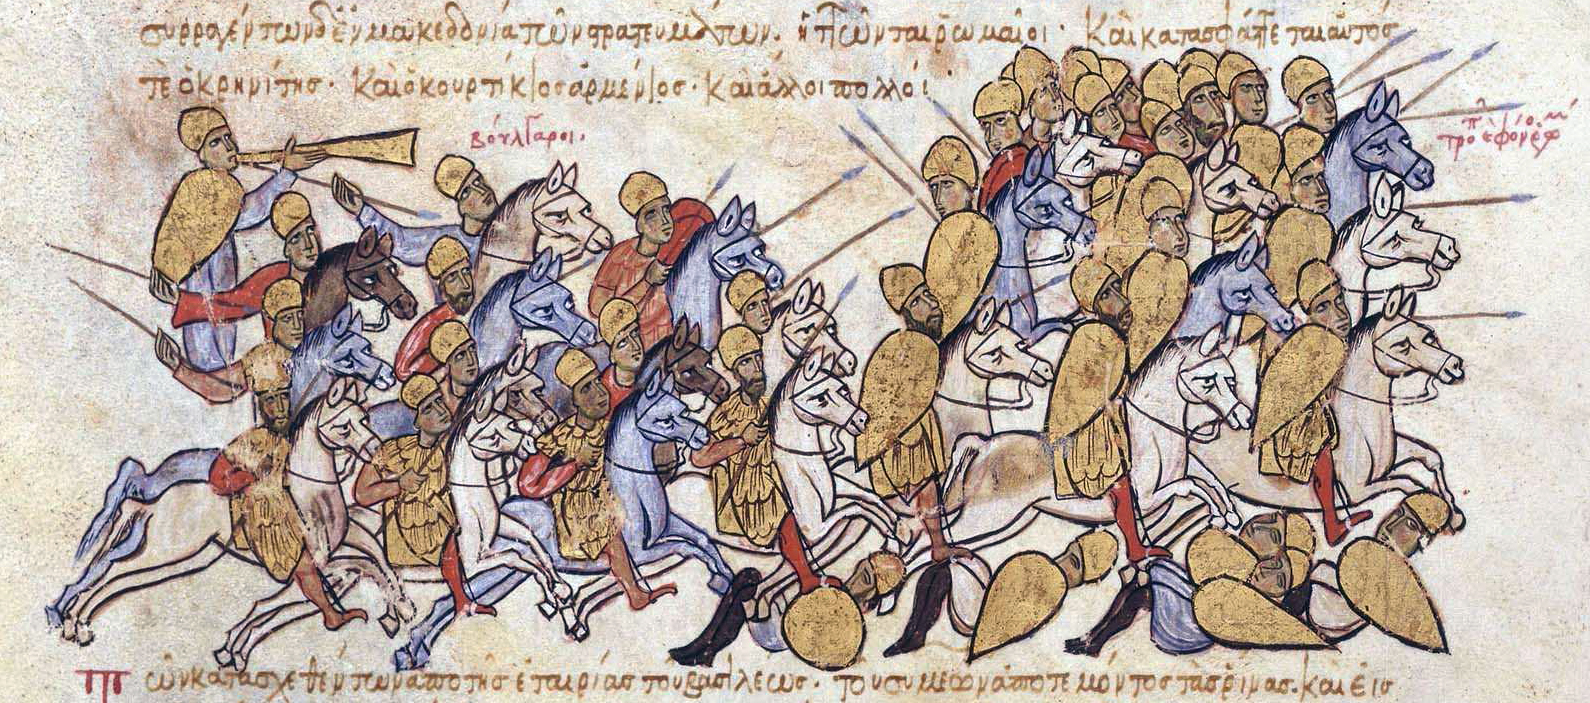 an introduction to the history of byzantine culture Summary: of all empires come and gone the byzantine empire has been one of the longest-lived political structures in human history for over a millennium byzantium remained a light of civilization and culture in a world.